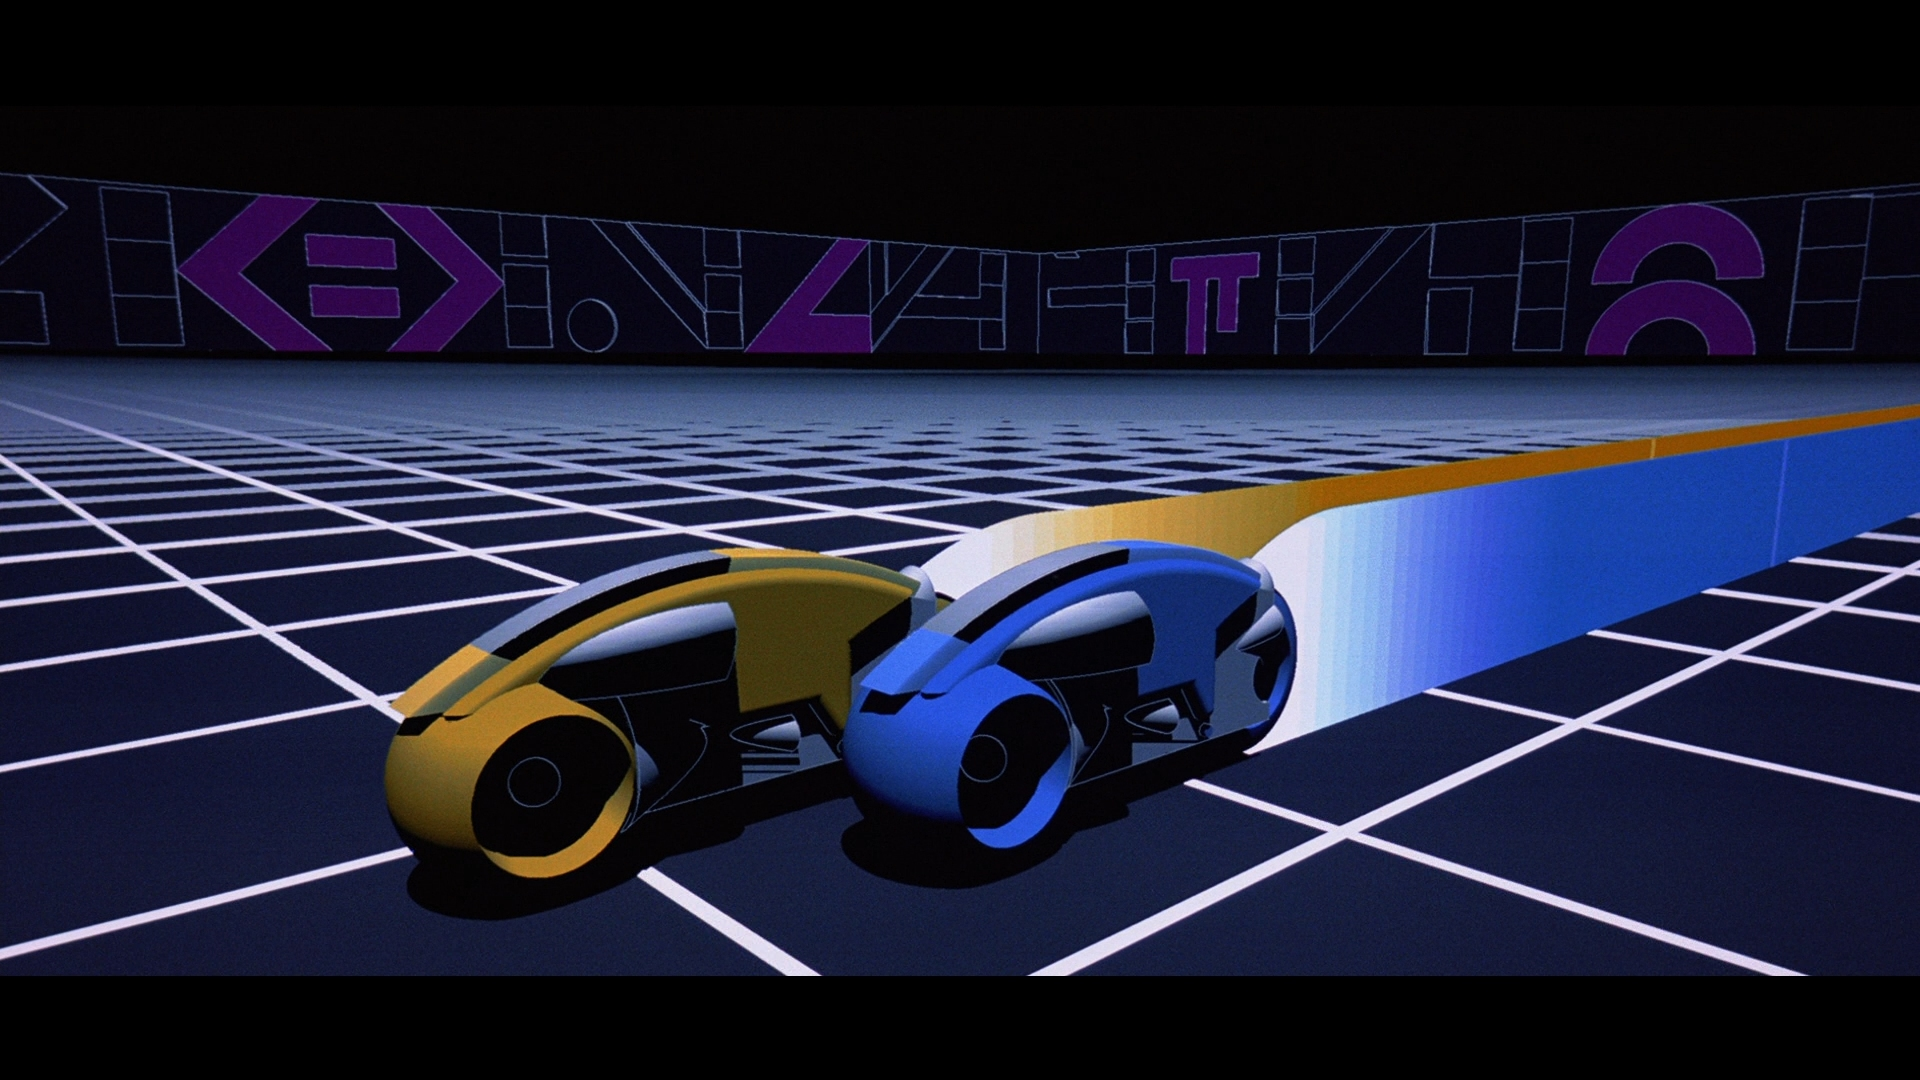 Tron Legacy Light Cycle Motorcycle Wallpaper 1920x1080